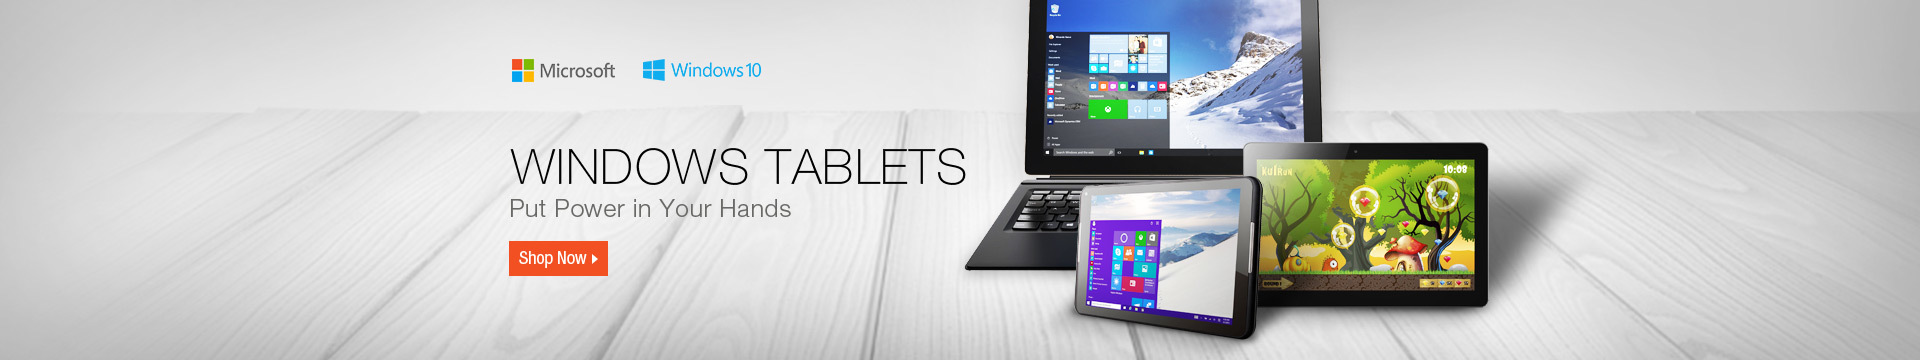 WINDOWS TABLETS